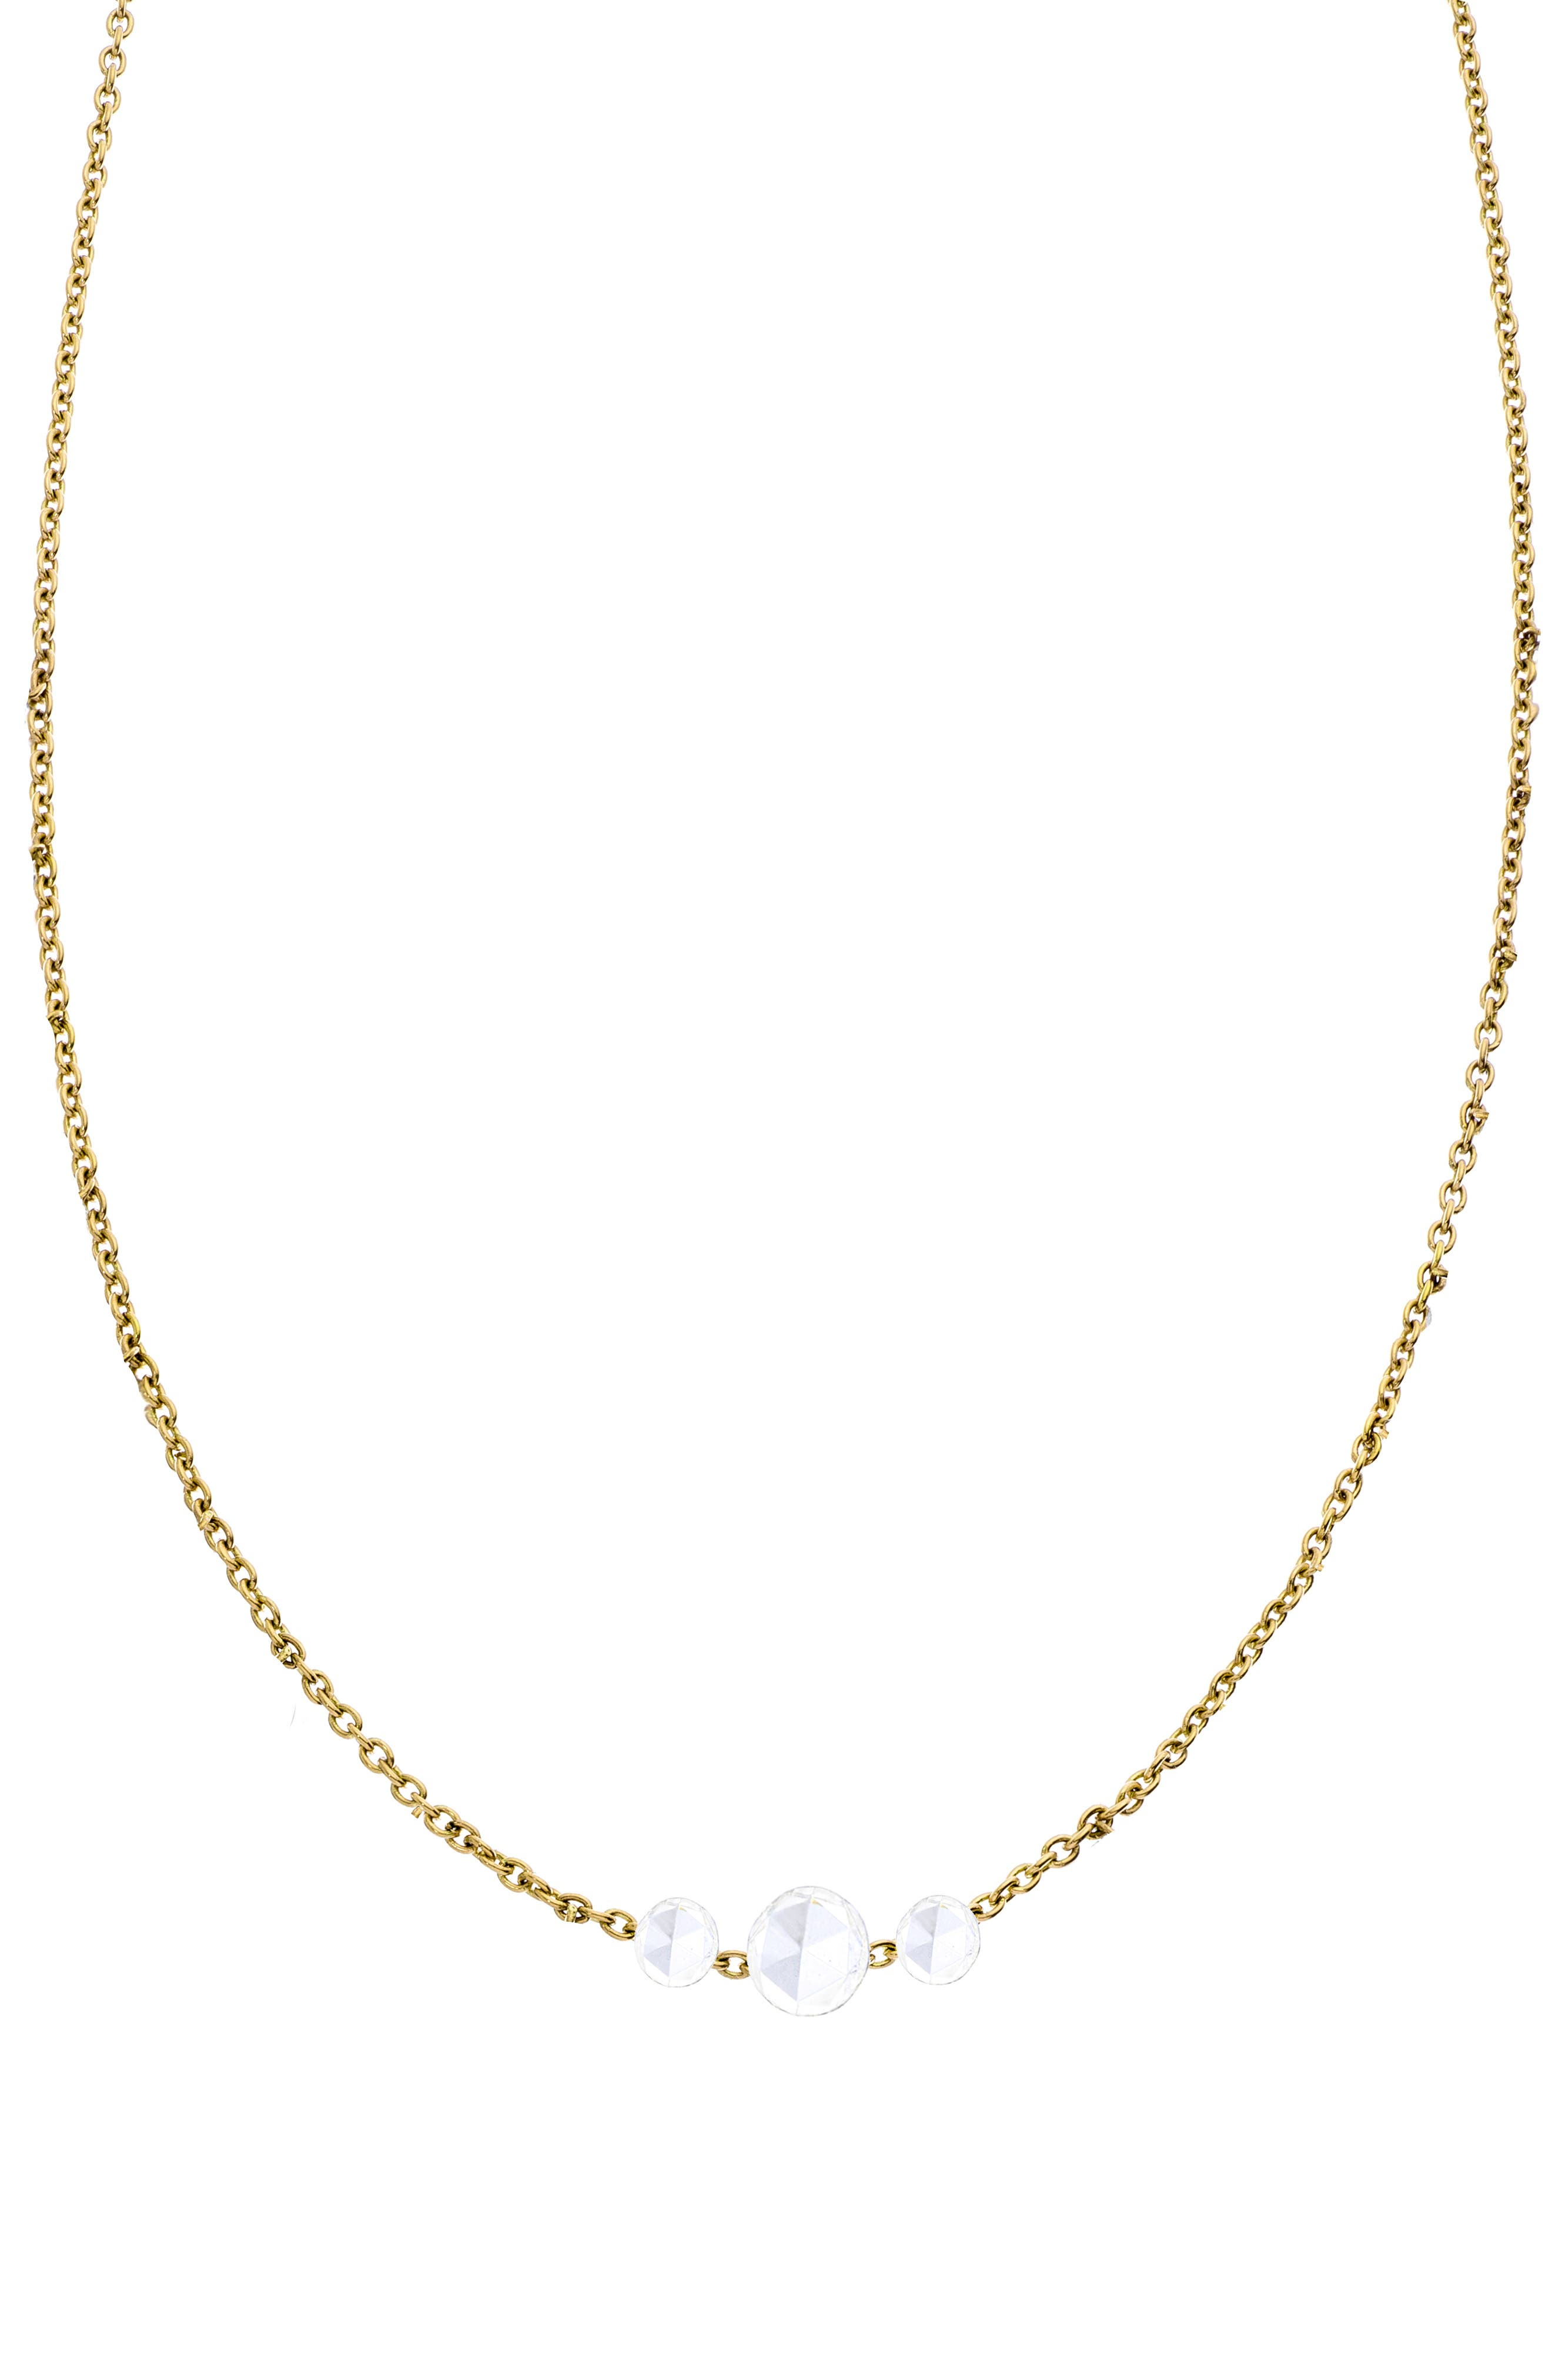 SETHI COUTURE Rose Cut 3-Stone Diamond Necklace in Yellow Gold/ Diamond